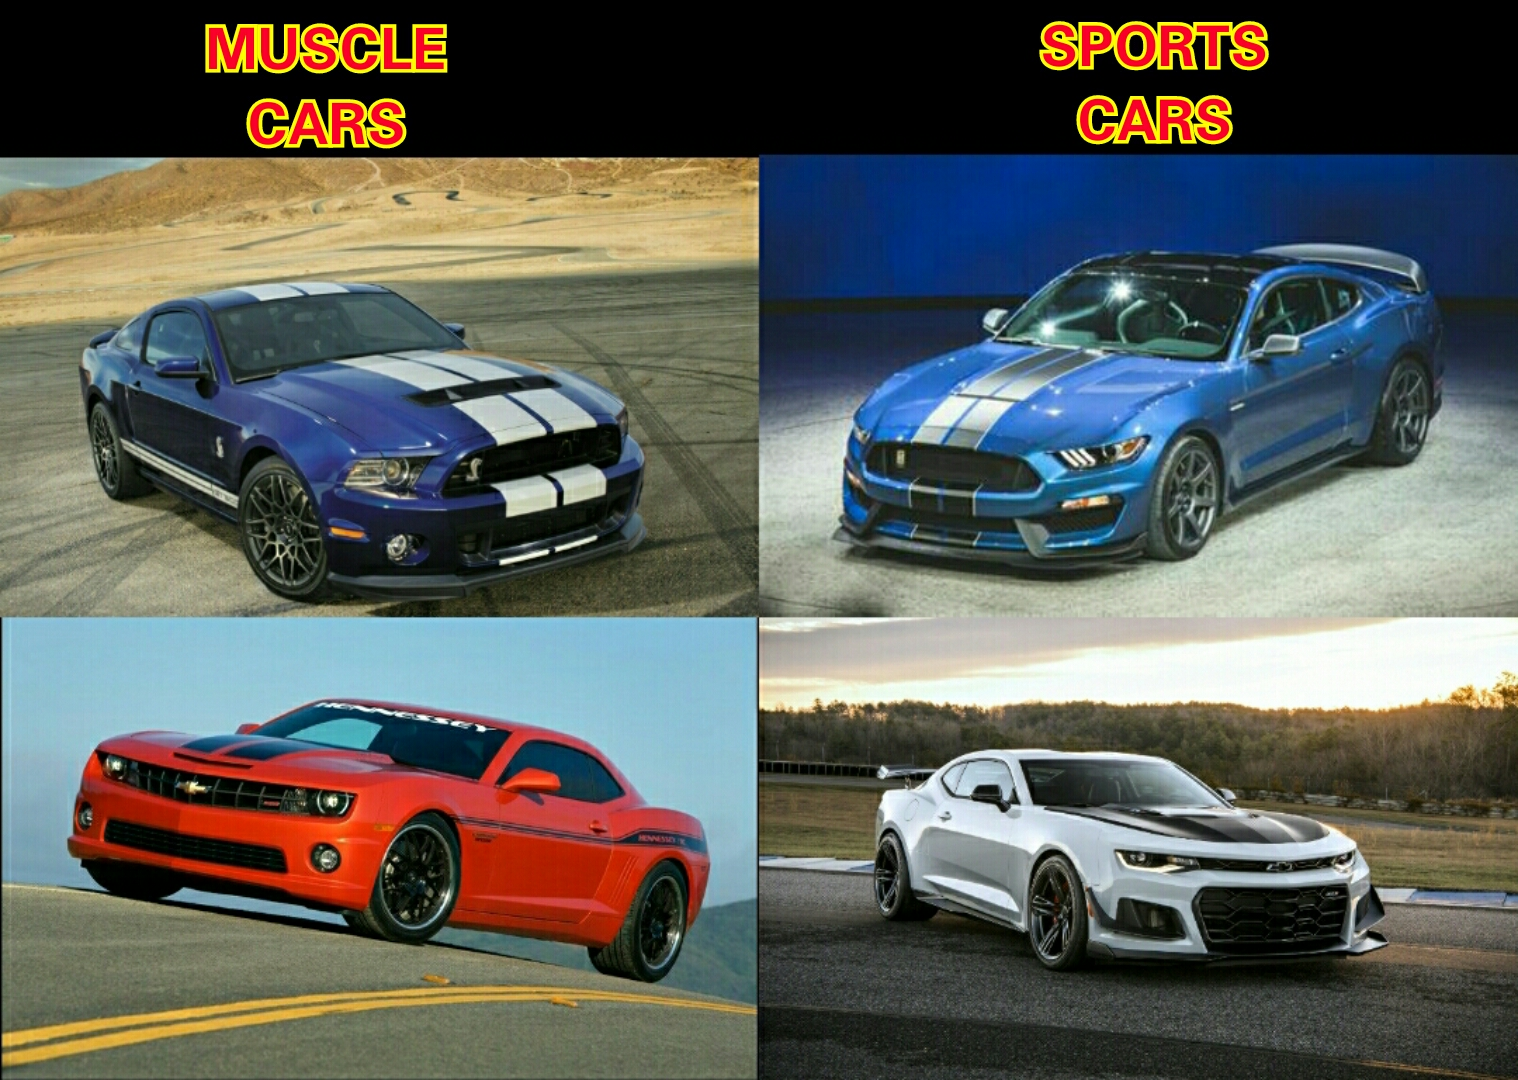 Chad asked us about cars that are called muscle cars but are not. I ...